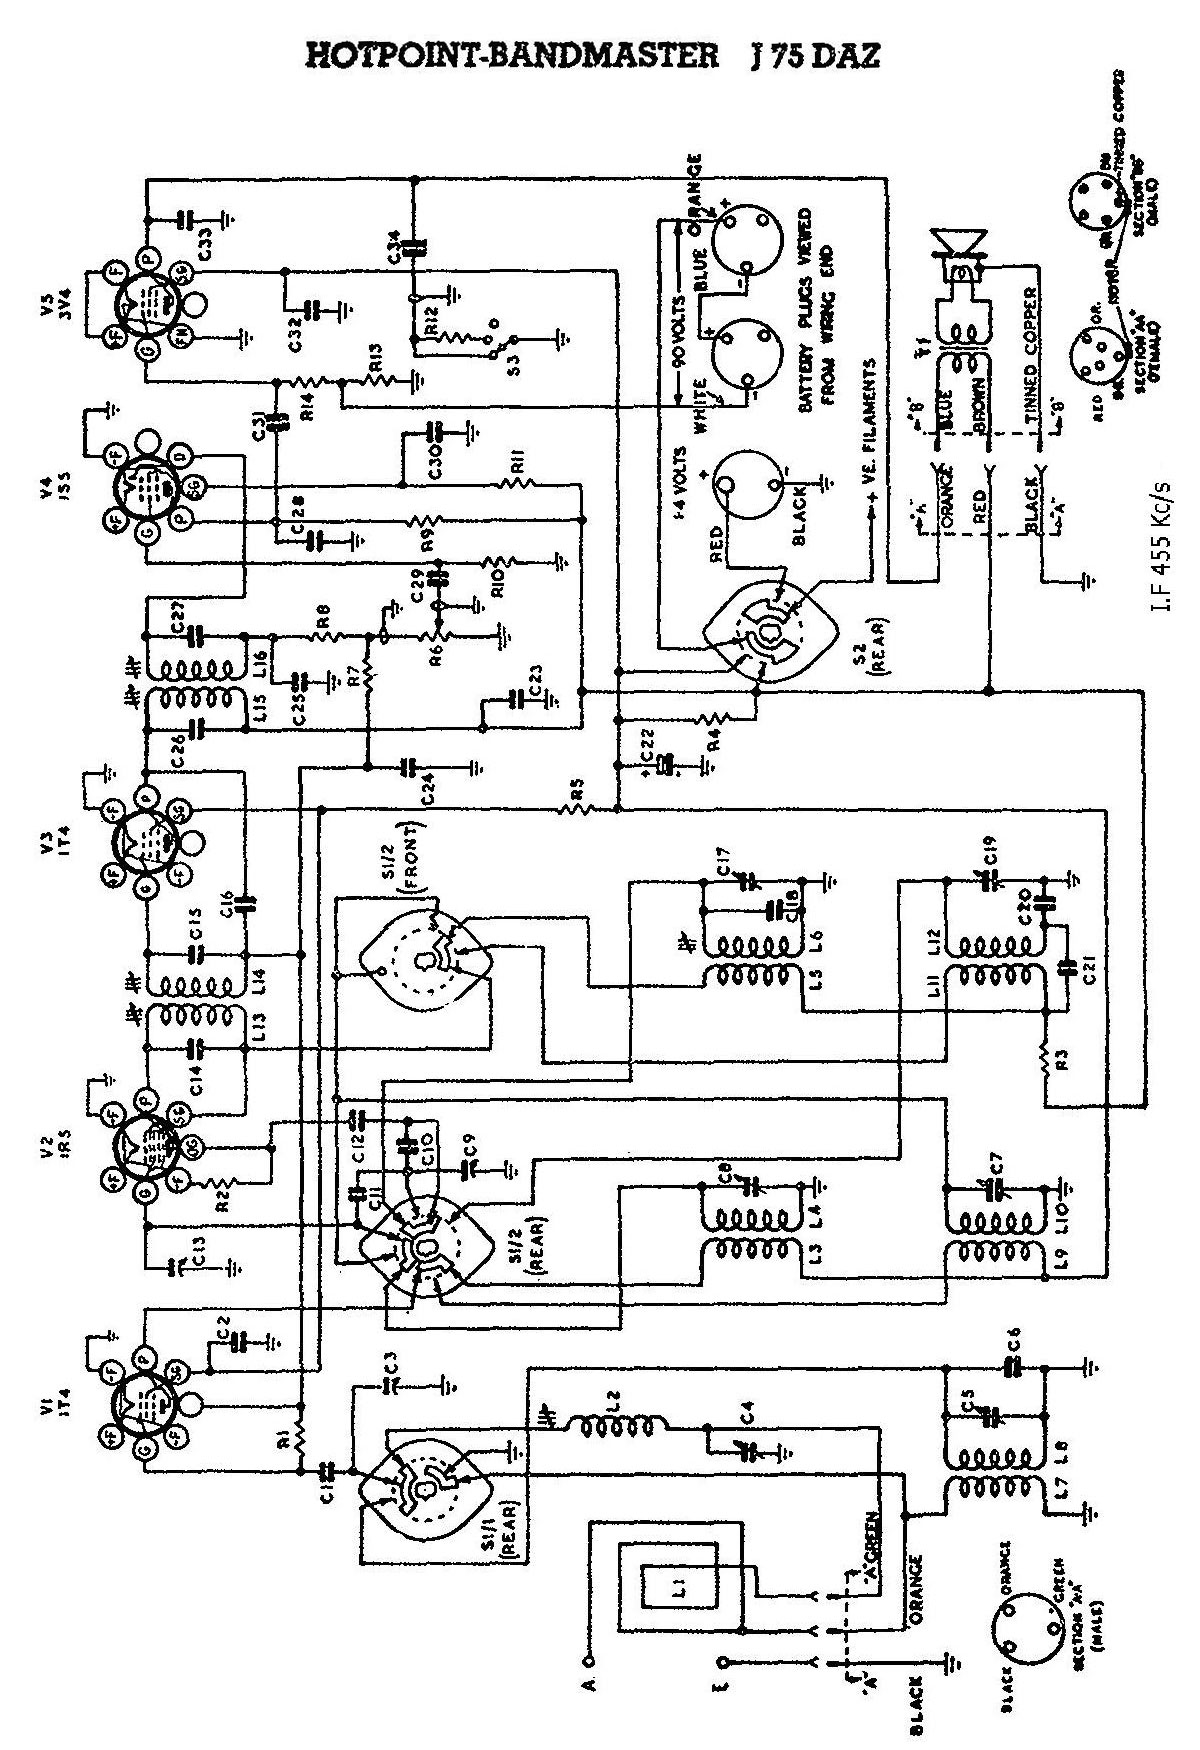 thermostat wiring diagram for gas furnace thermostat discover wall heater replacement parts